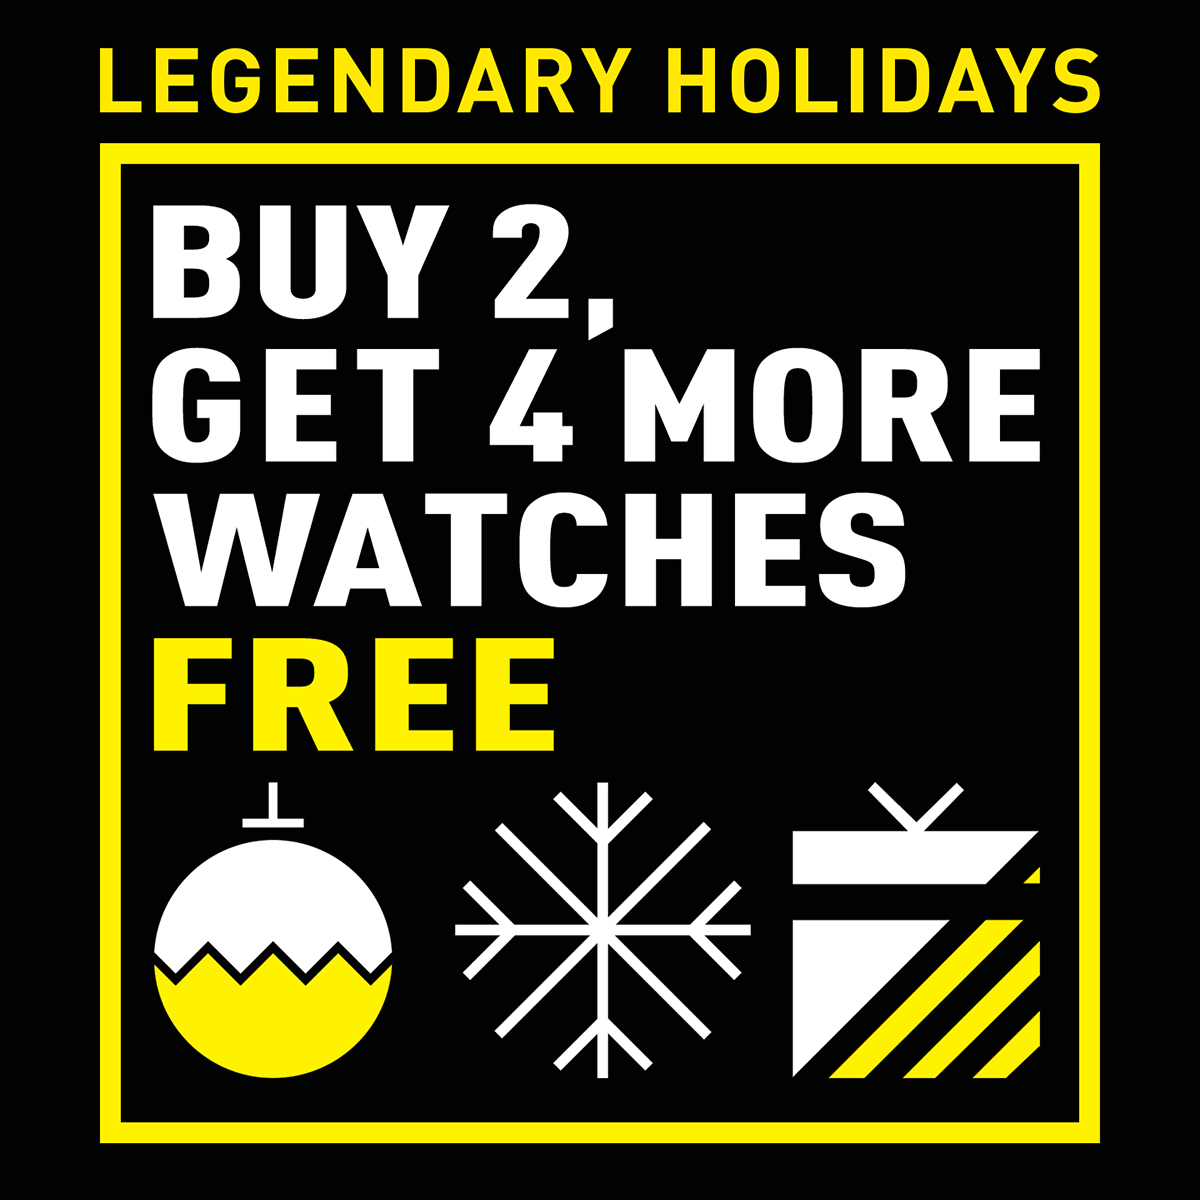 Buy 2, get 4 more watches FREE from Invicta